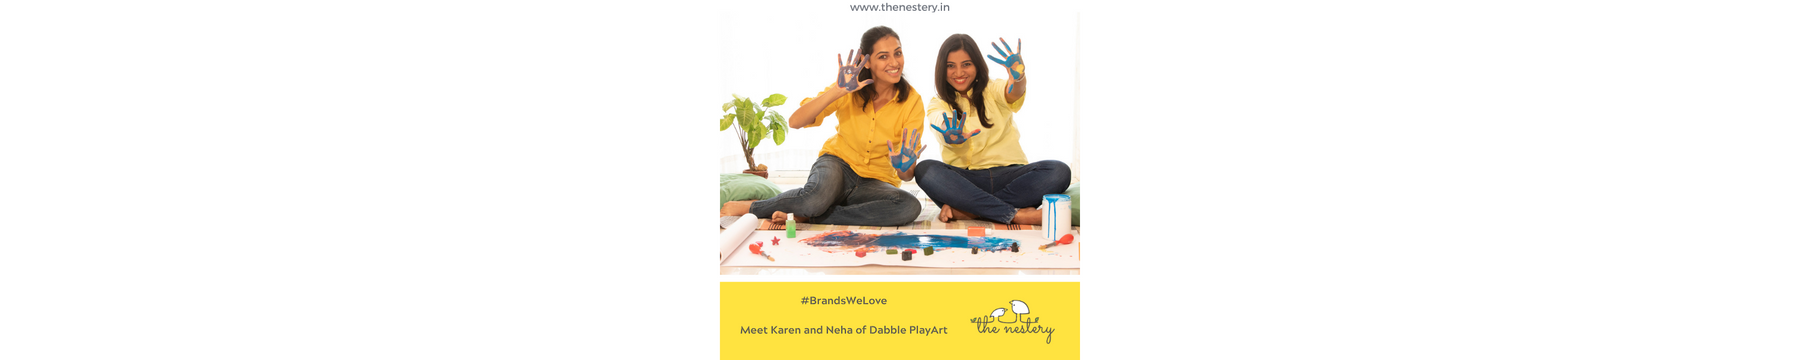 "In Conversation with the Brands We Love -  Meet Karen and Neha of ""Dabble PlayArt"""